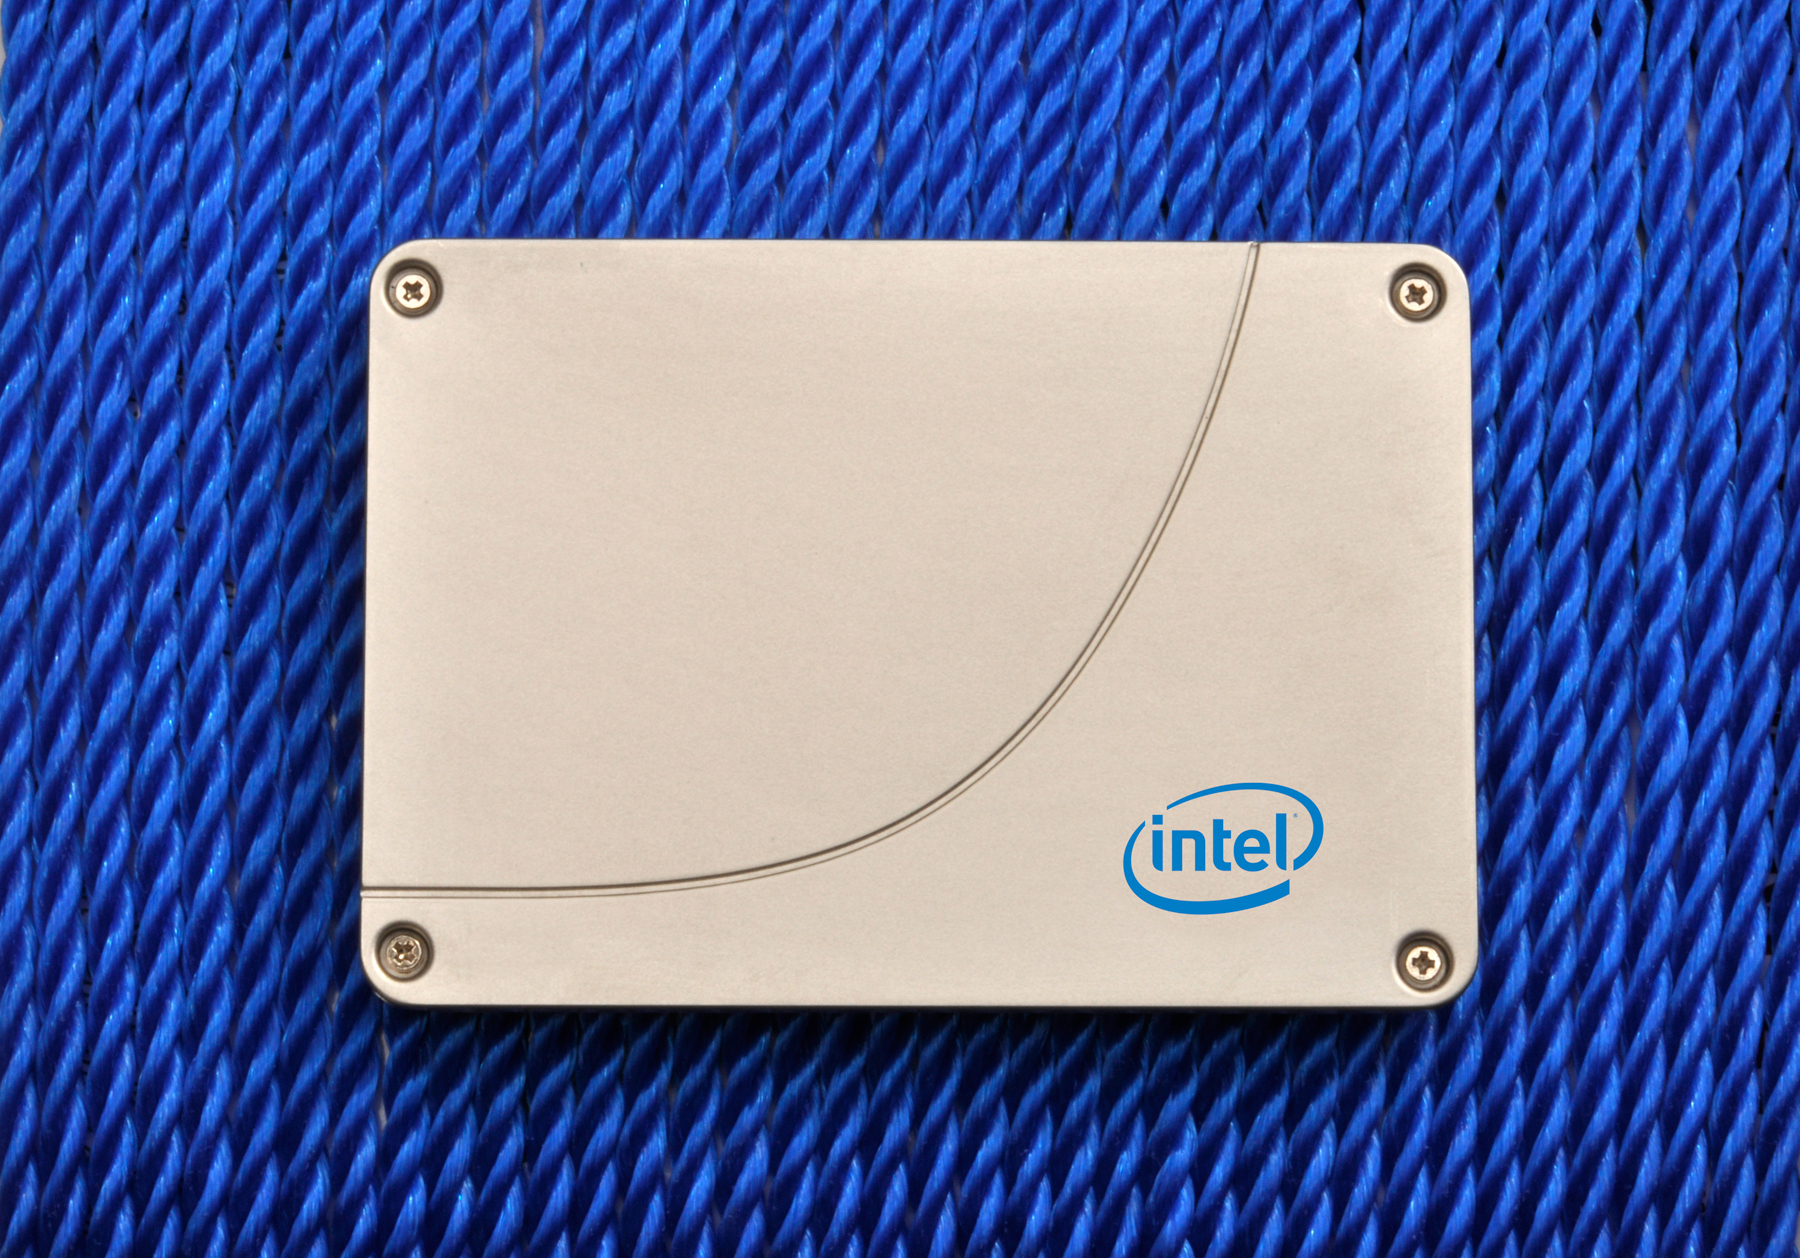 The new Intel 520 Series solid-state drive.